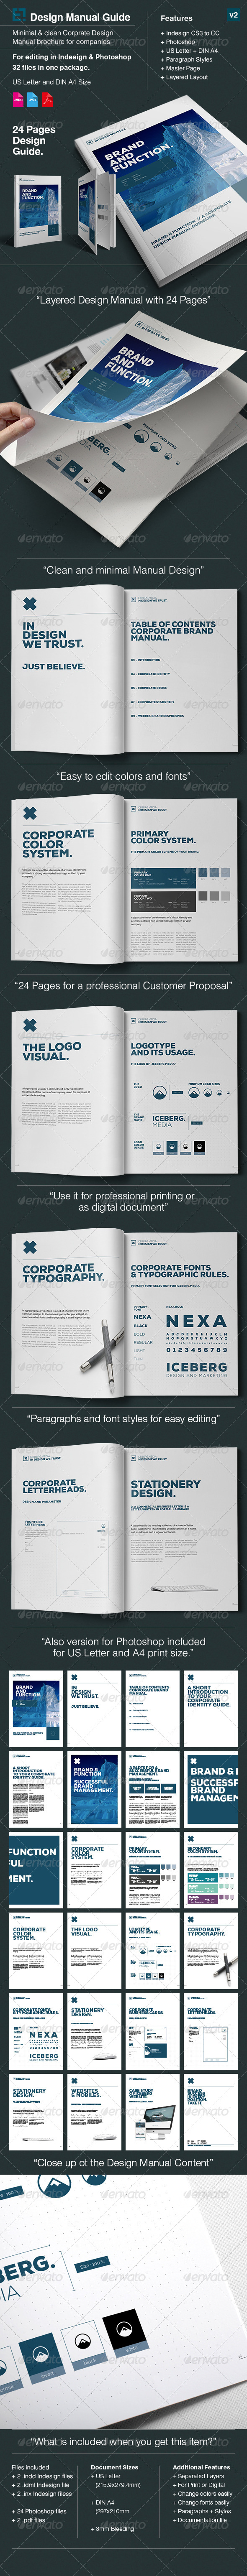 Elite Corporate Design Manual Guide - 24 Pages | GraphicRiver